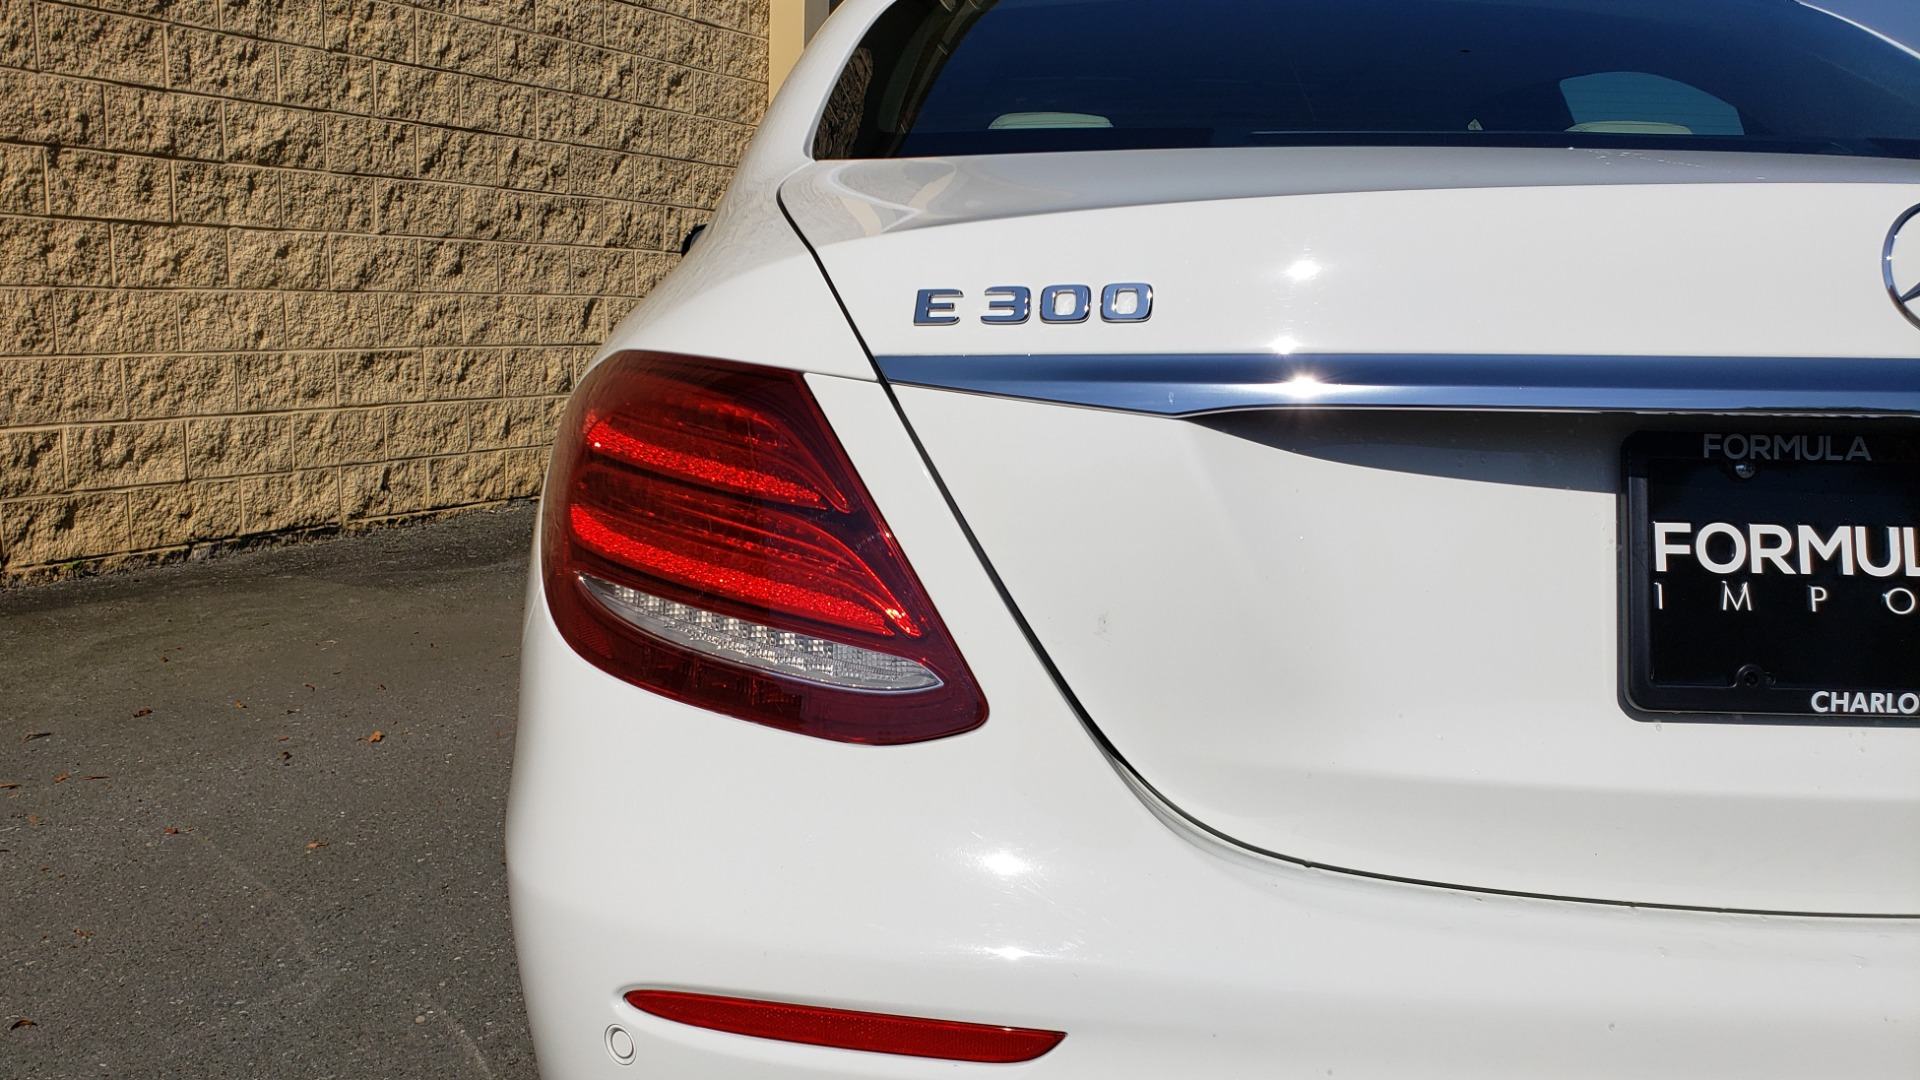 Used 2017 Mercedes-Benz E-Class E 300 PREMIUM / RWD / NAV / SNF / PARKING PILOT / REARVIEW / BURMESTER for sale Sold at Formula Imports in Charlotte NC 28227 17